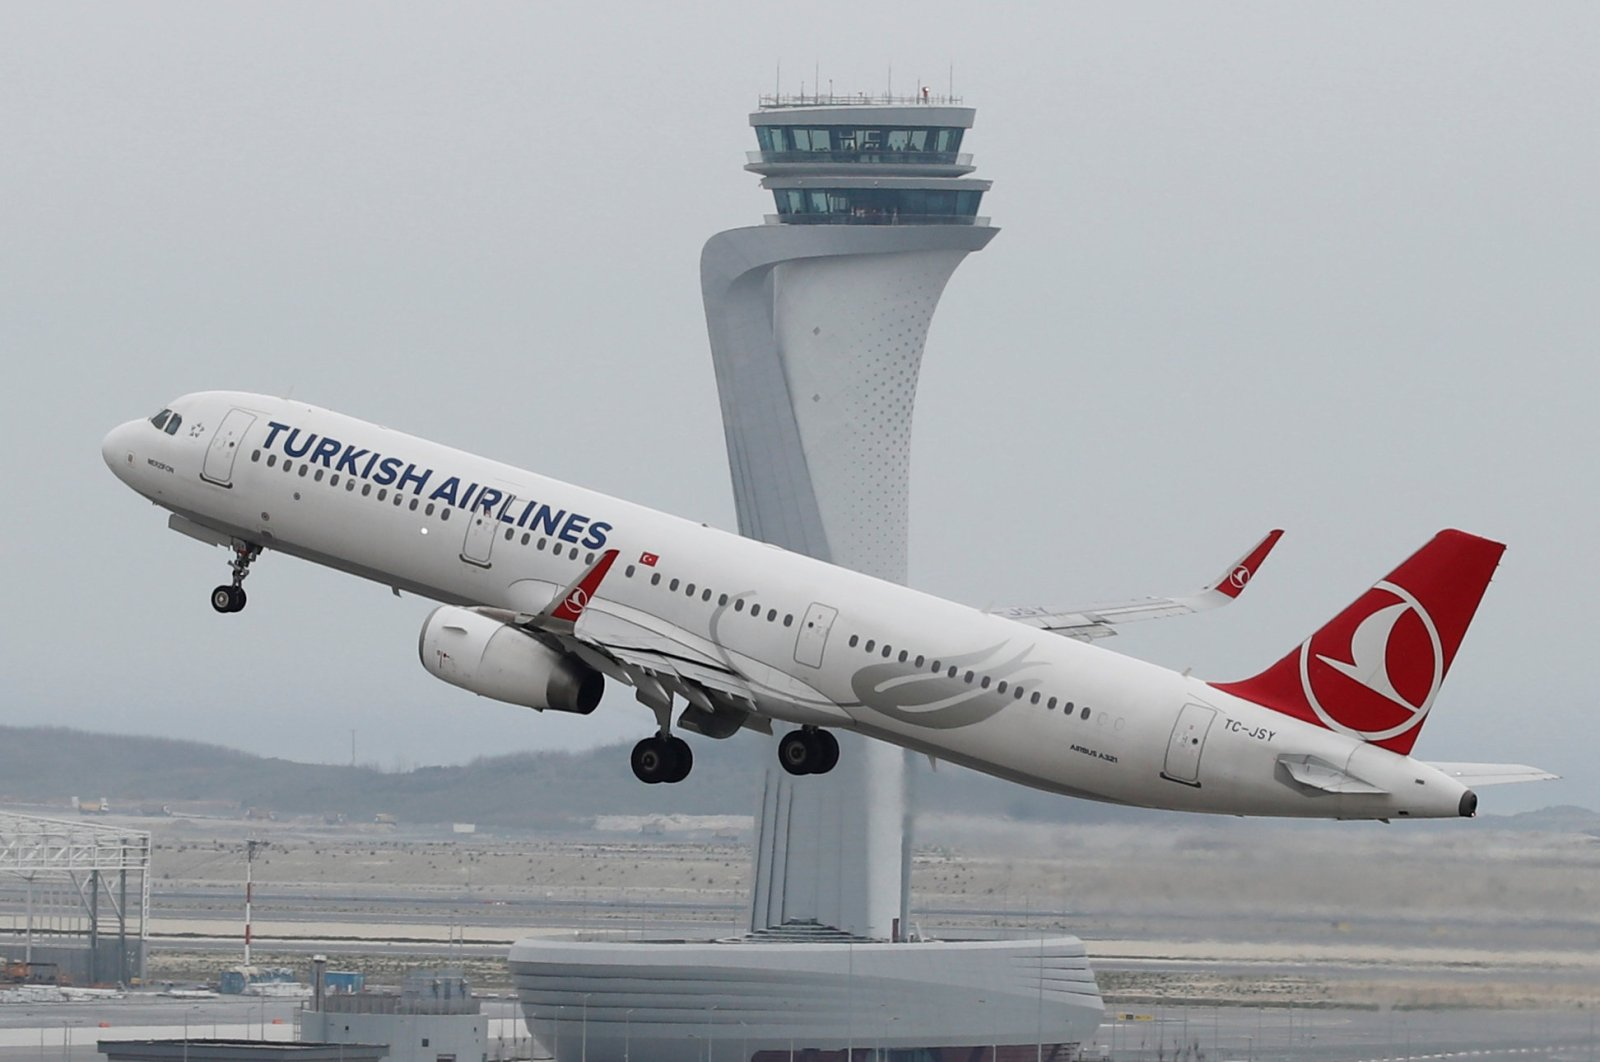 A Turkish Airlines plane takes off from Istanbul Airport in Istanbul, Turkey, April 6, 2019. (Reuters Photo)